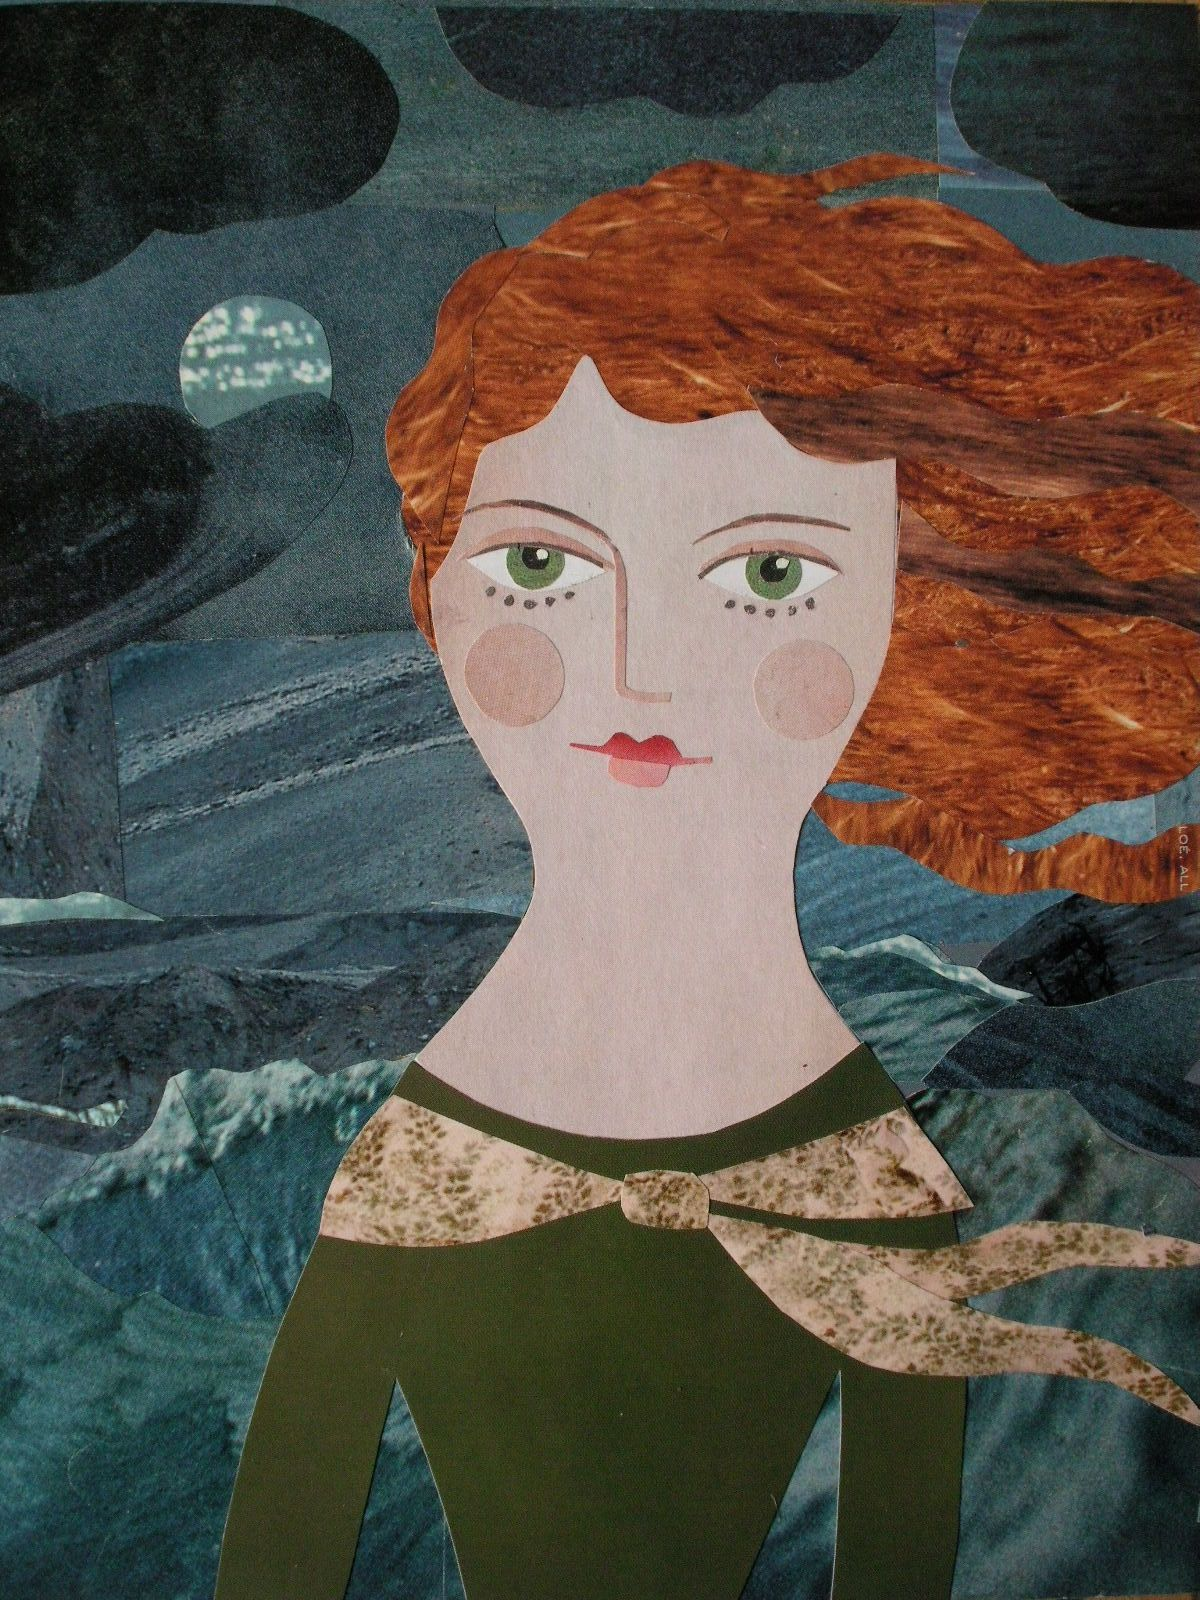 'A Dark and Stormy Night'. Cut paper collage by Amanda White www.amandawhite-contemporarynaiveart.com